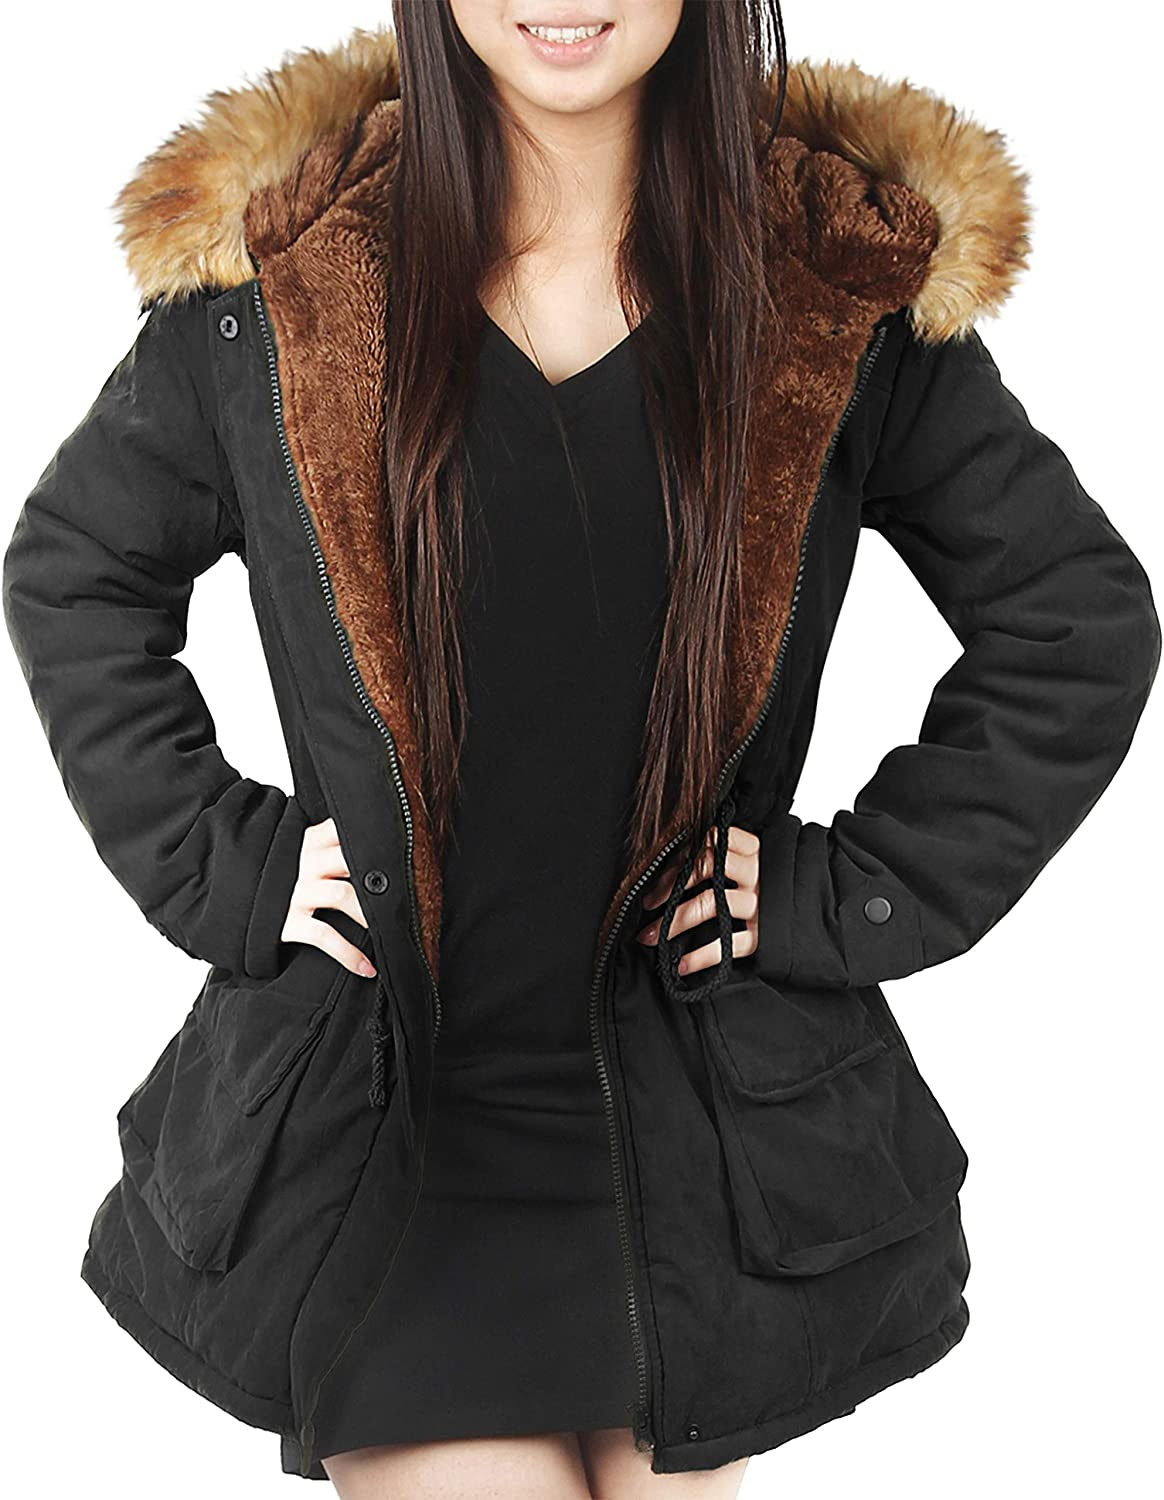 4How Women's Long Down Jacket Hooded Thickened Parka Puffer Jacket Warm Winter Coats with Faux Fur Trimmed